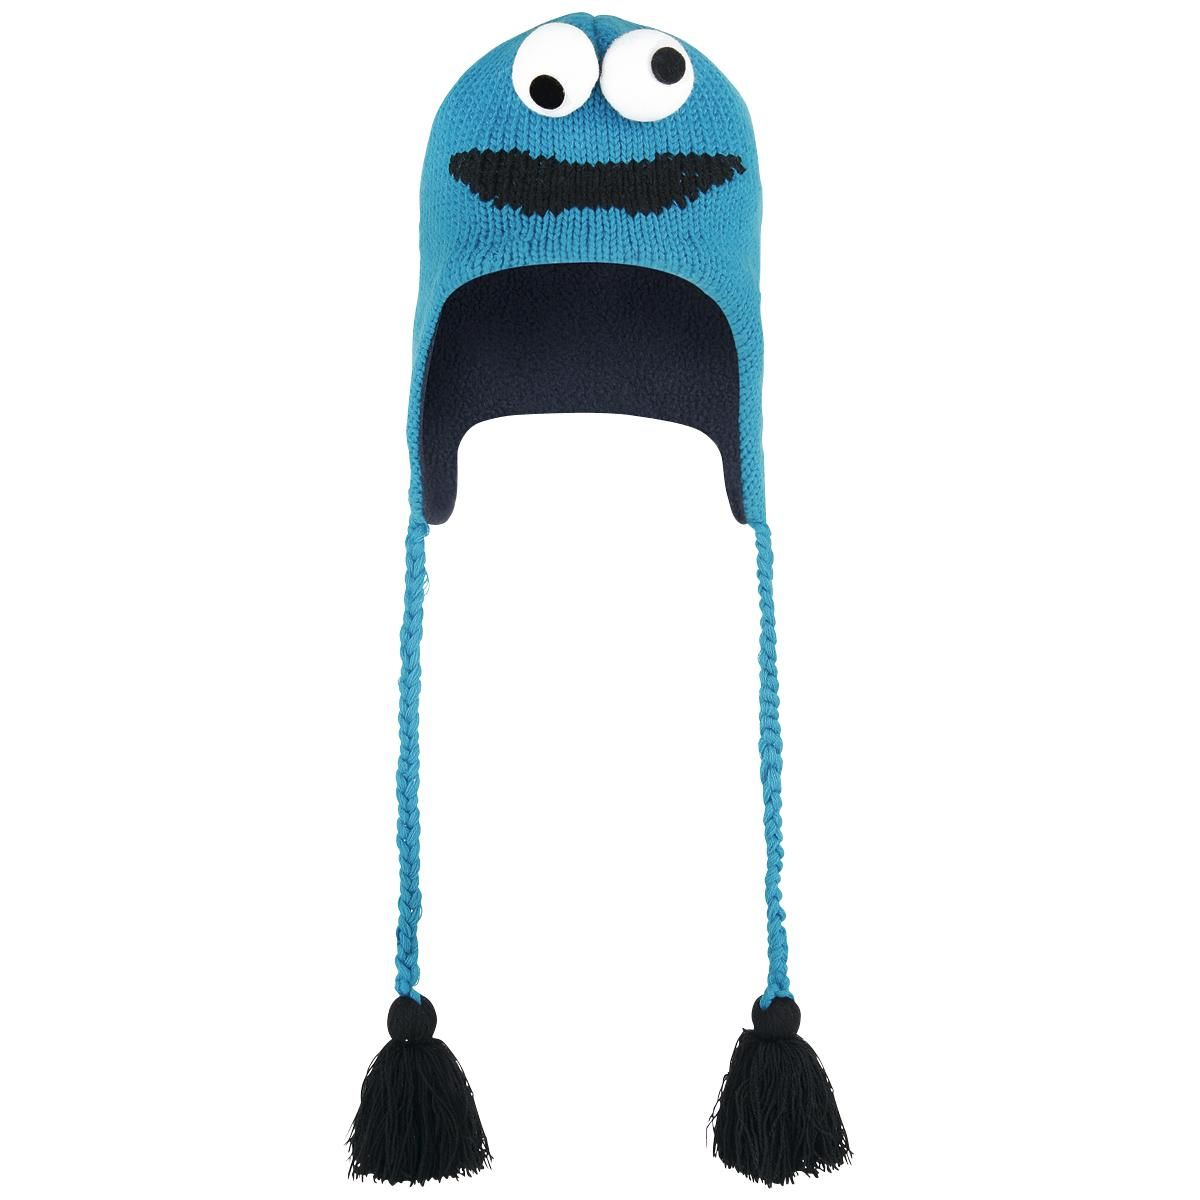 Want! It's the cookie monster! :D